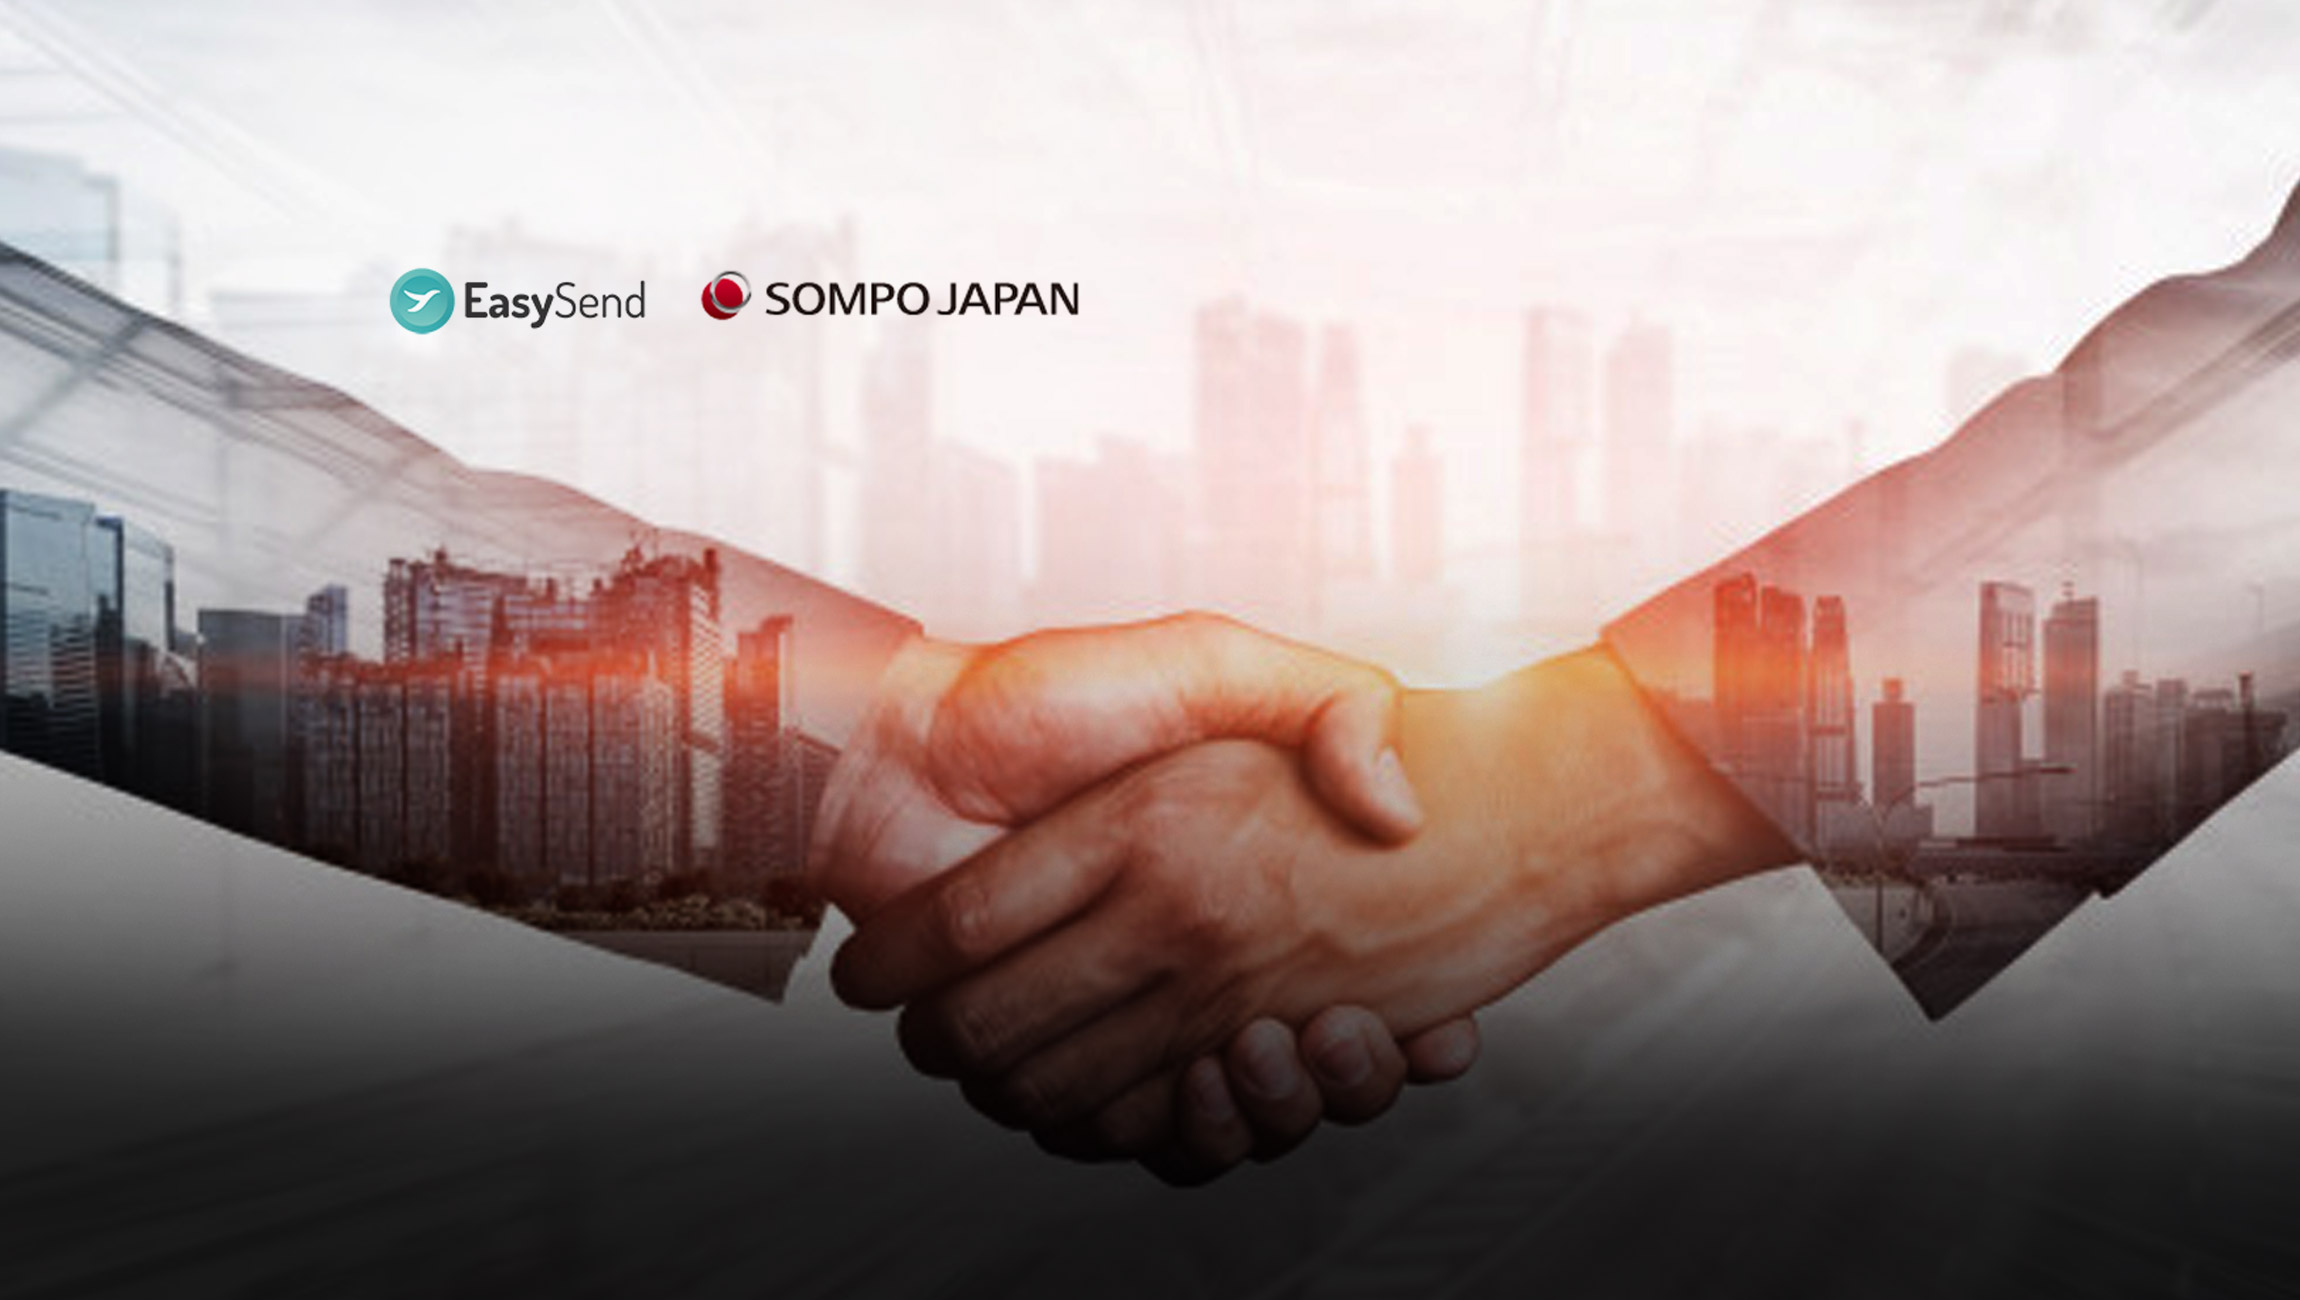 EasySend and Sompo Japan Join Forces to Improve Customer Experience